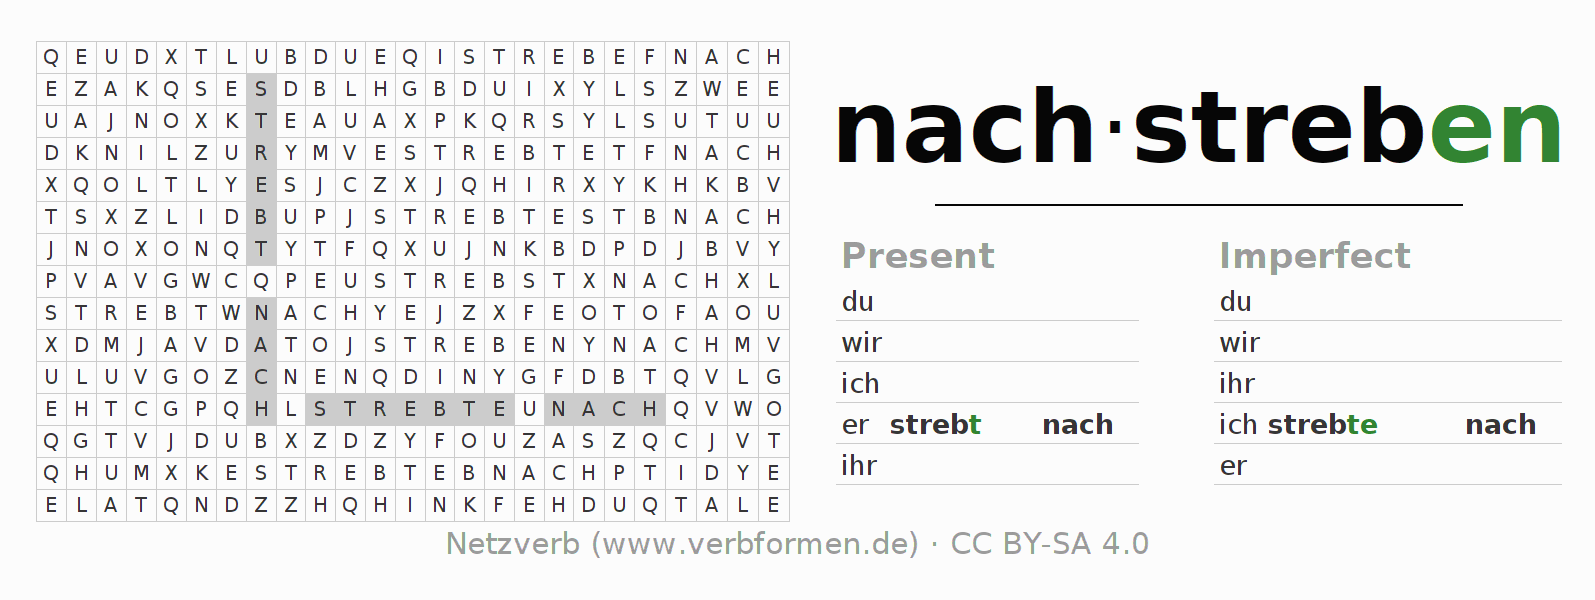 Word search puzzle for the conjugation of the verb nachstreben